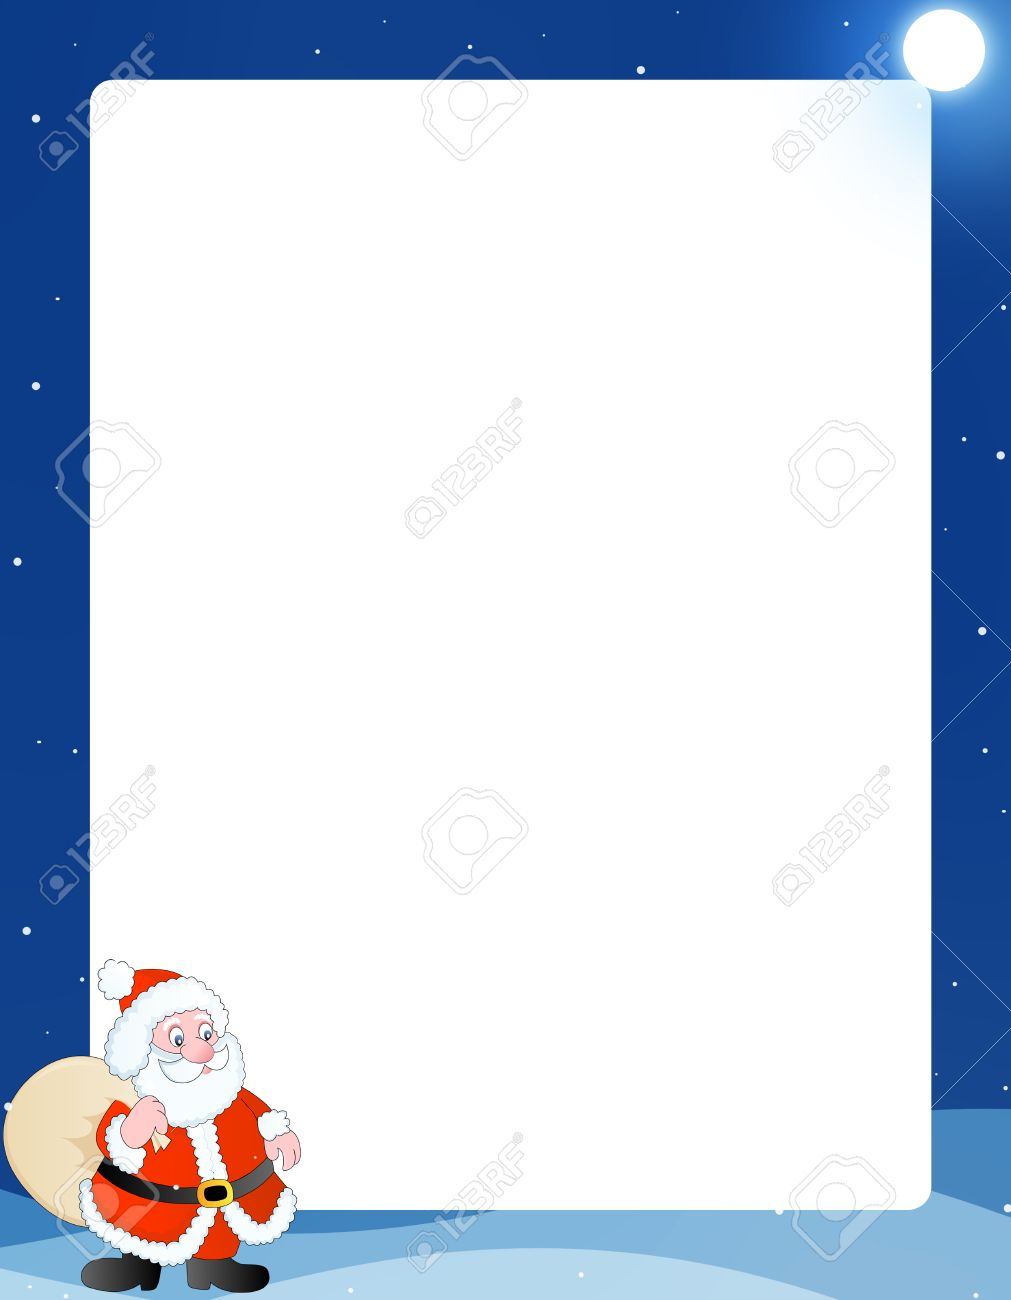 Beautiful Blue Winter Frame /border With A Cute Santa Claus With ...